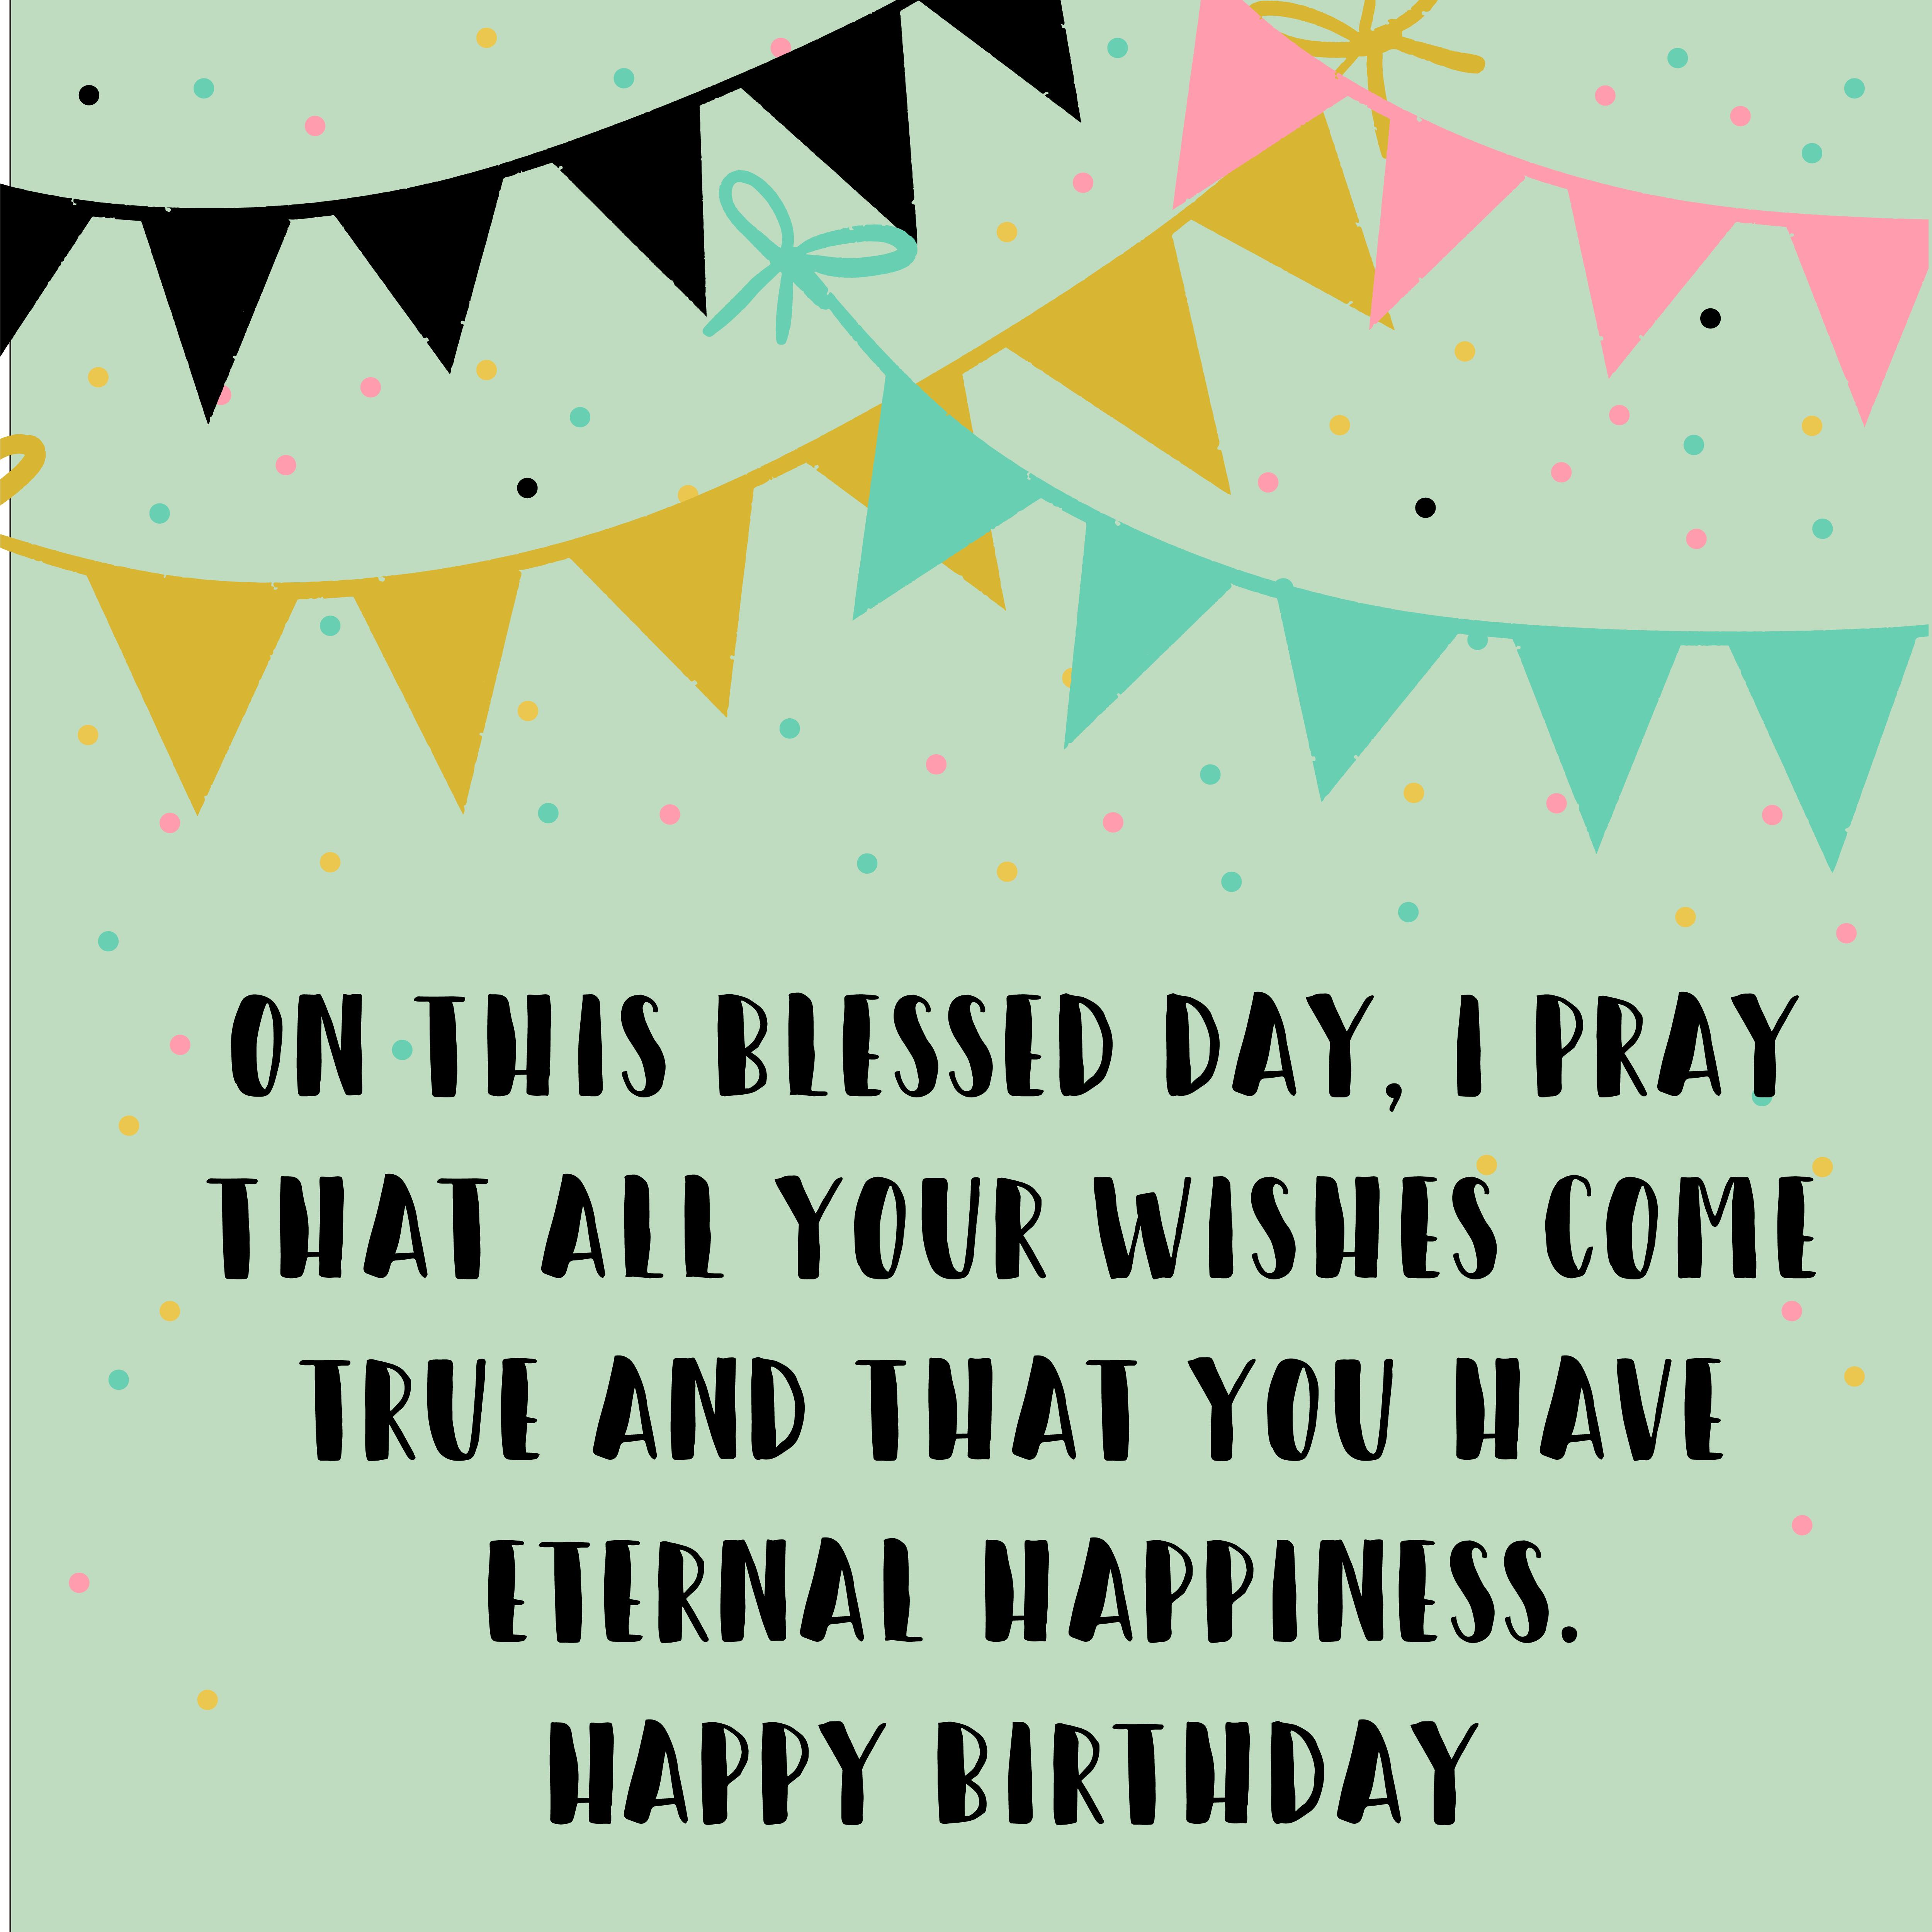 Religious Birthday Quotes For Women. QuotesGram  |Birthday Blessings